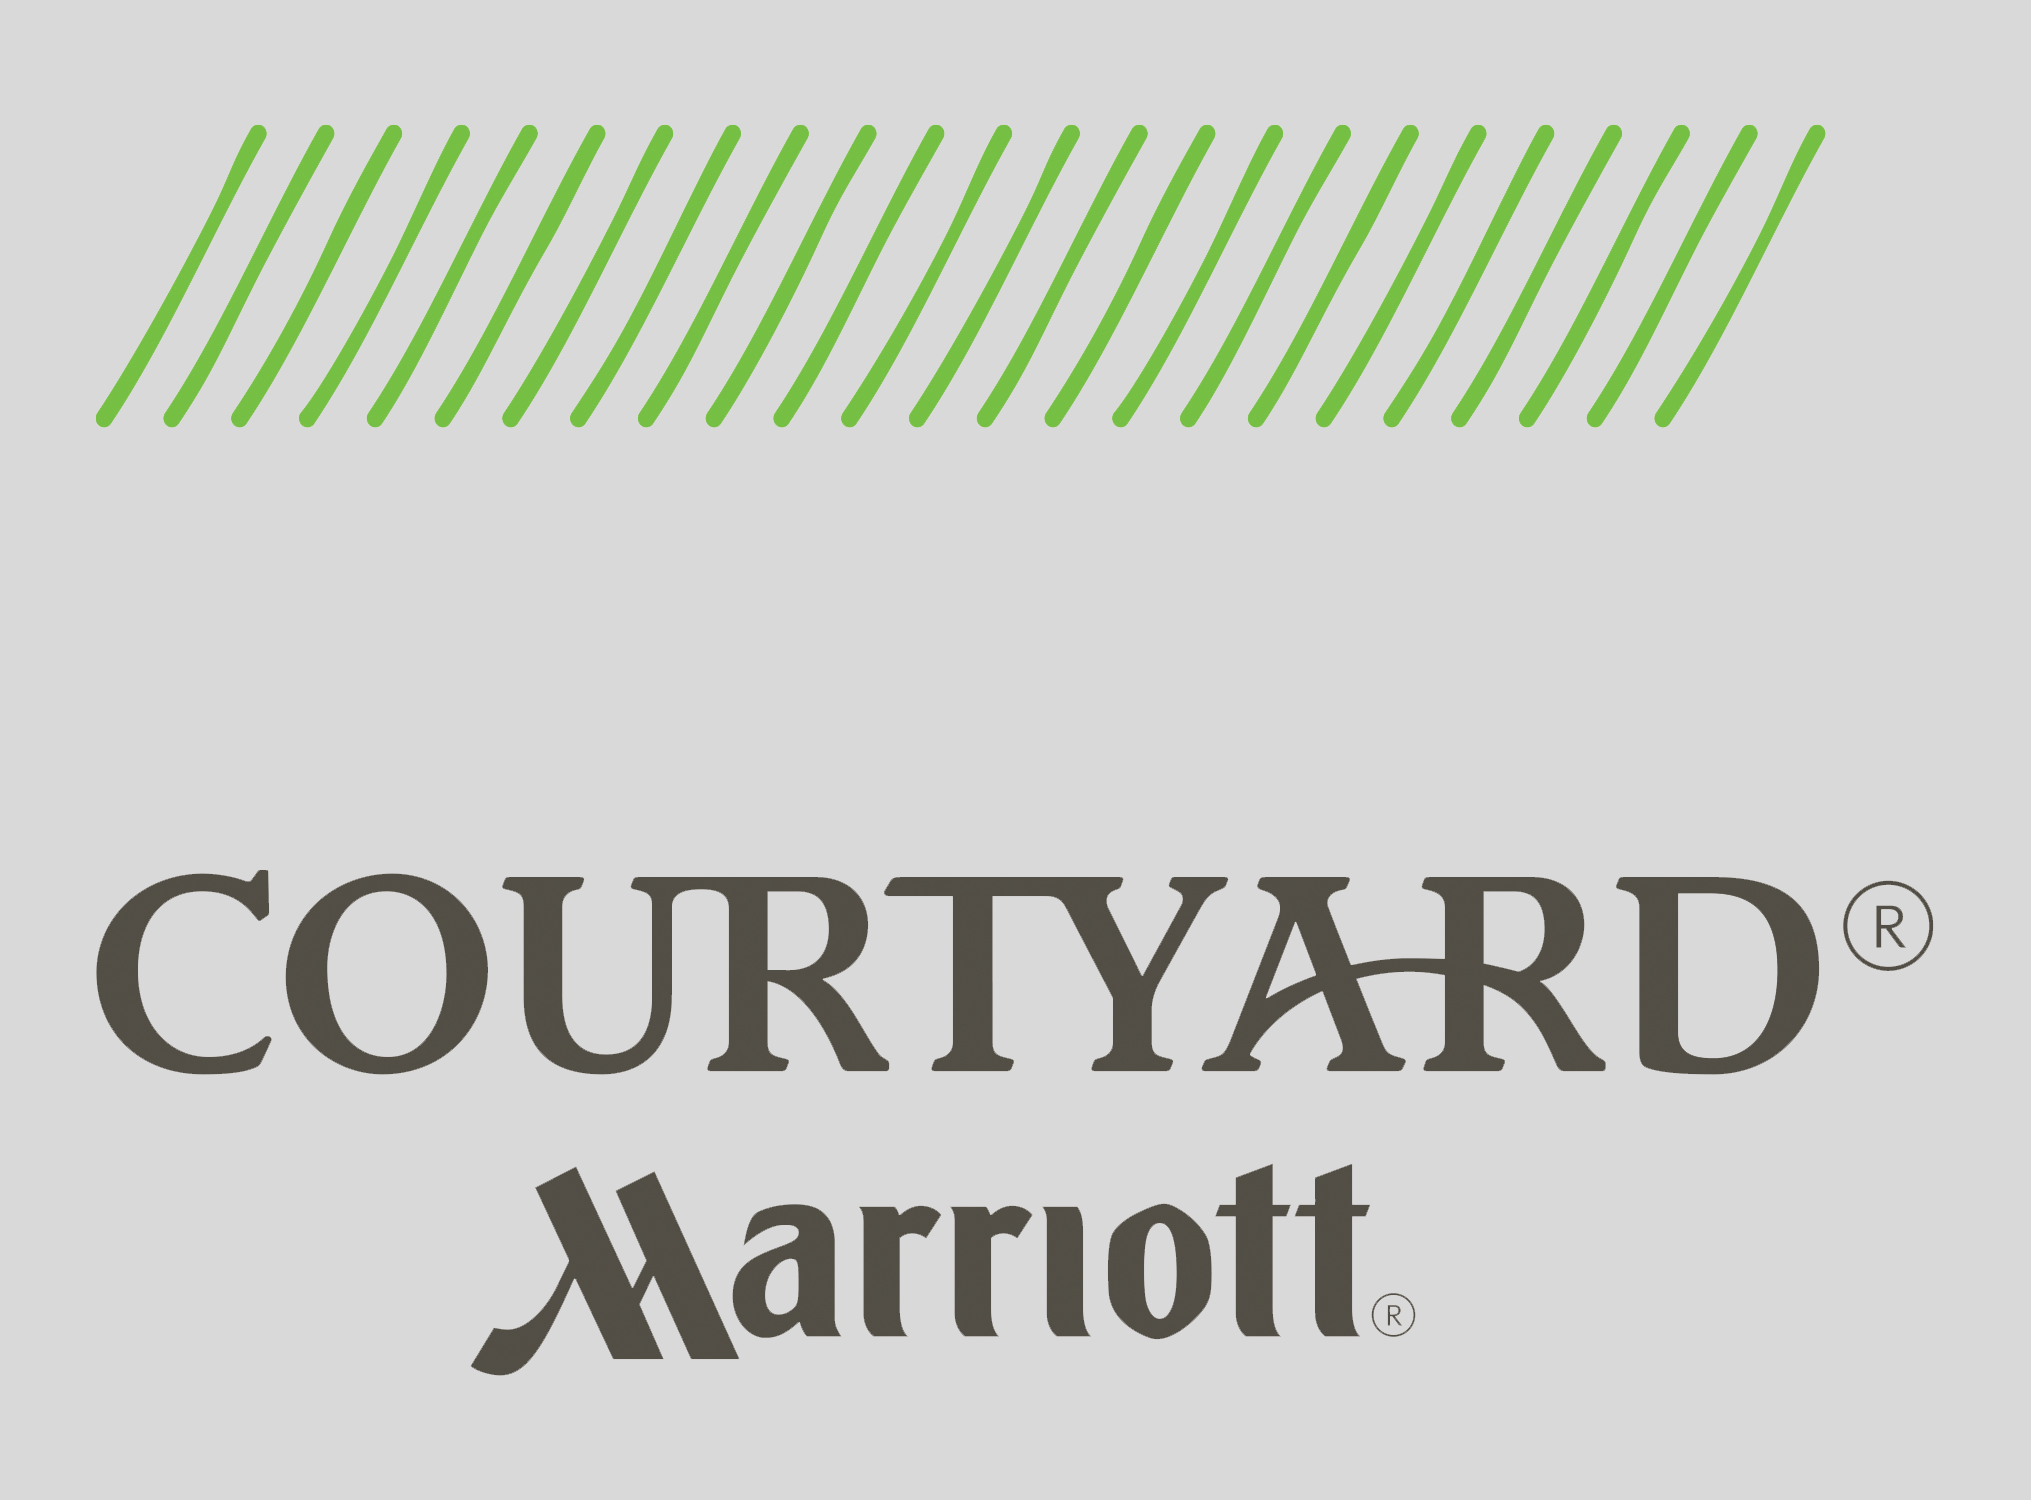 marriott rooms forecasting case study